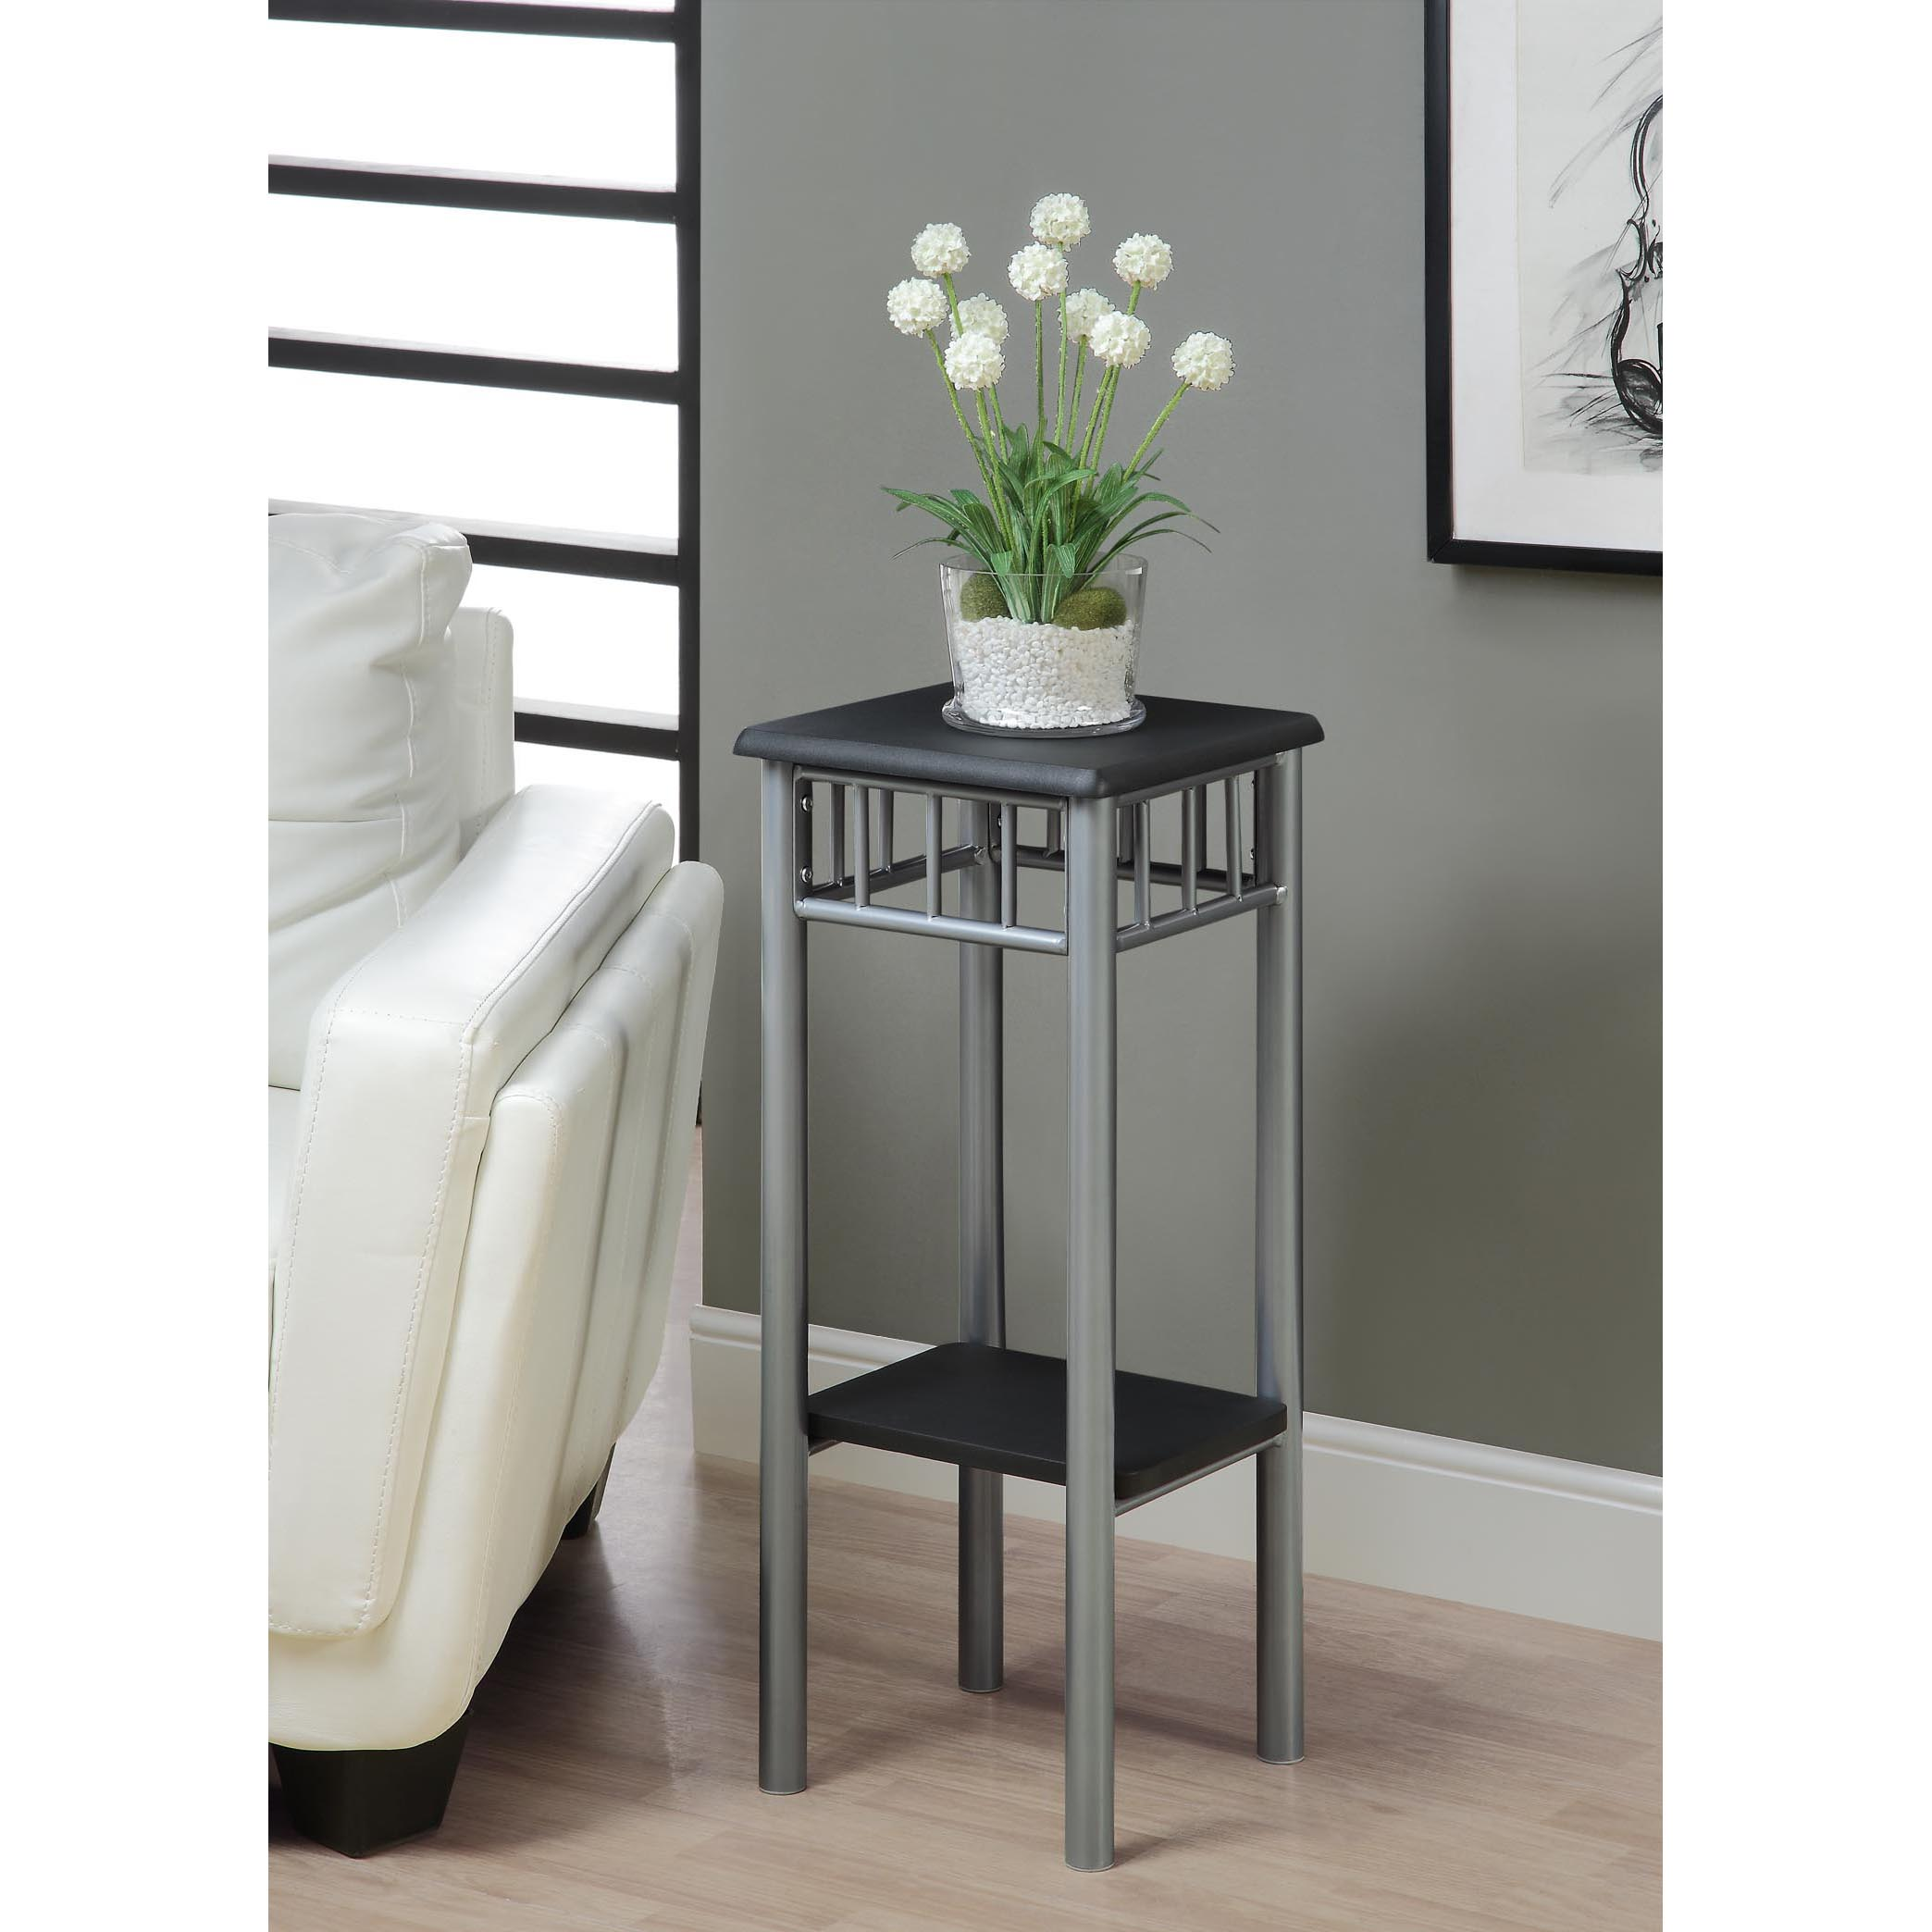 Monarch Black/ Silver Metal Plant Stand at Sears.com